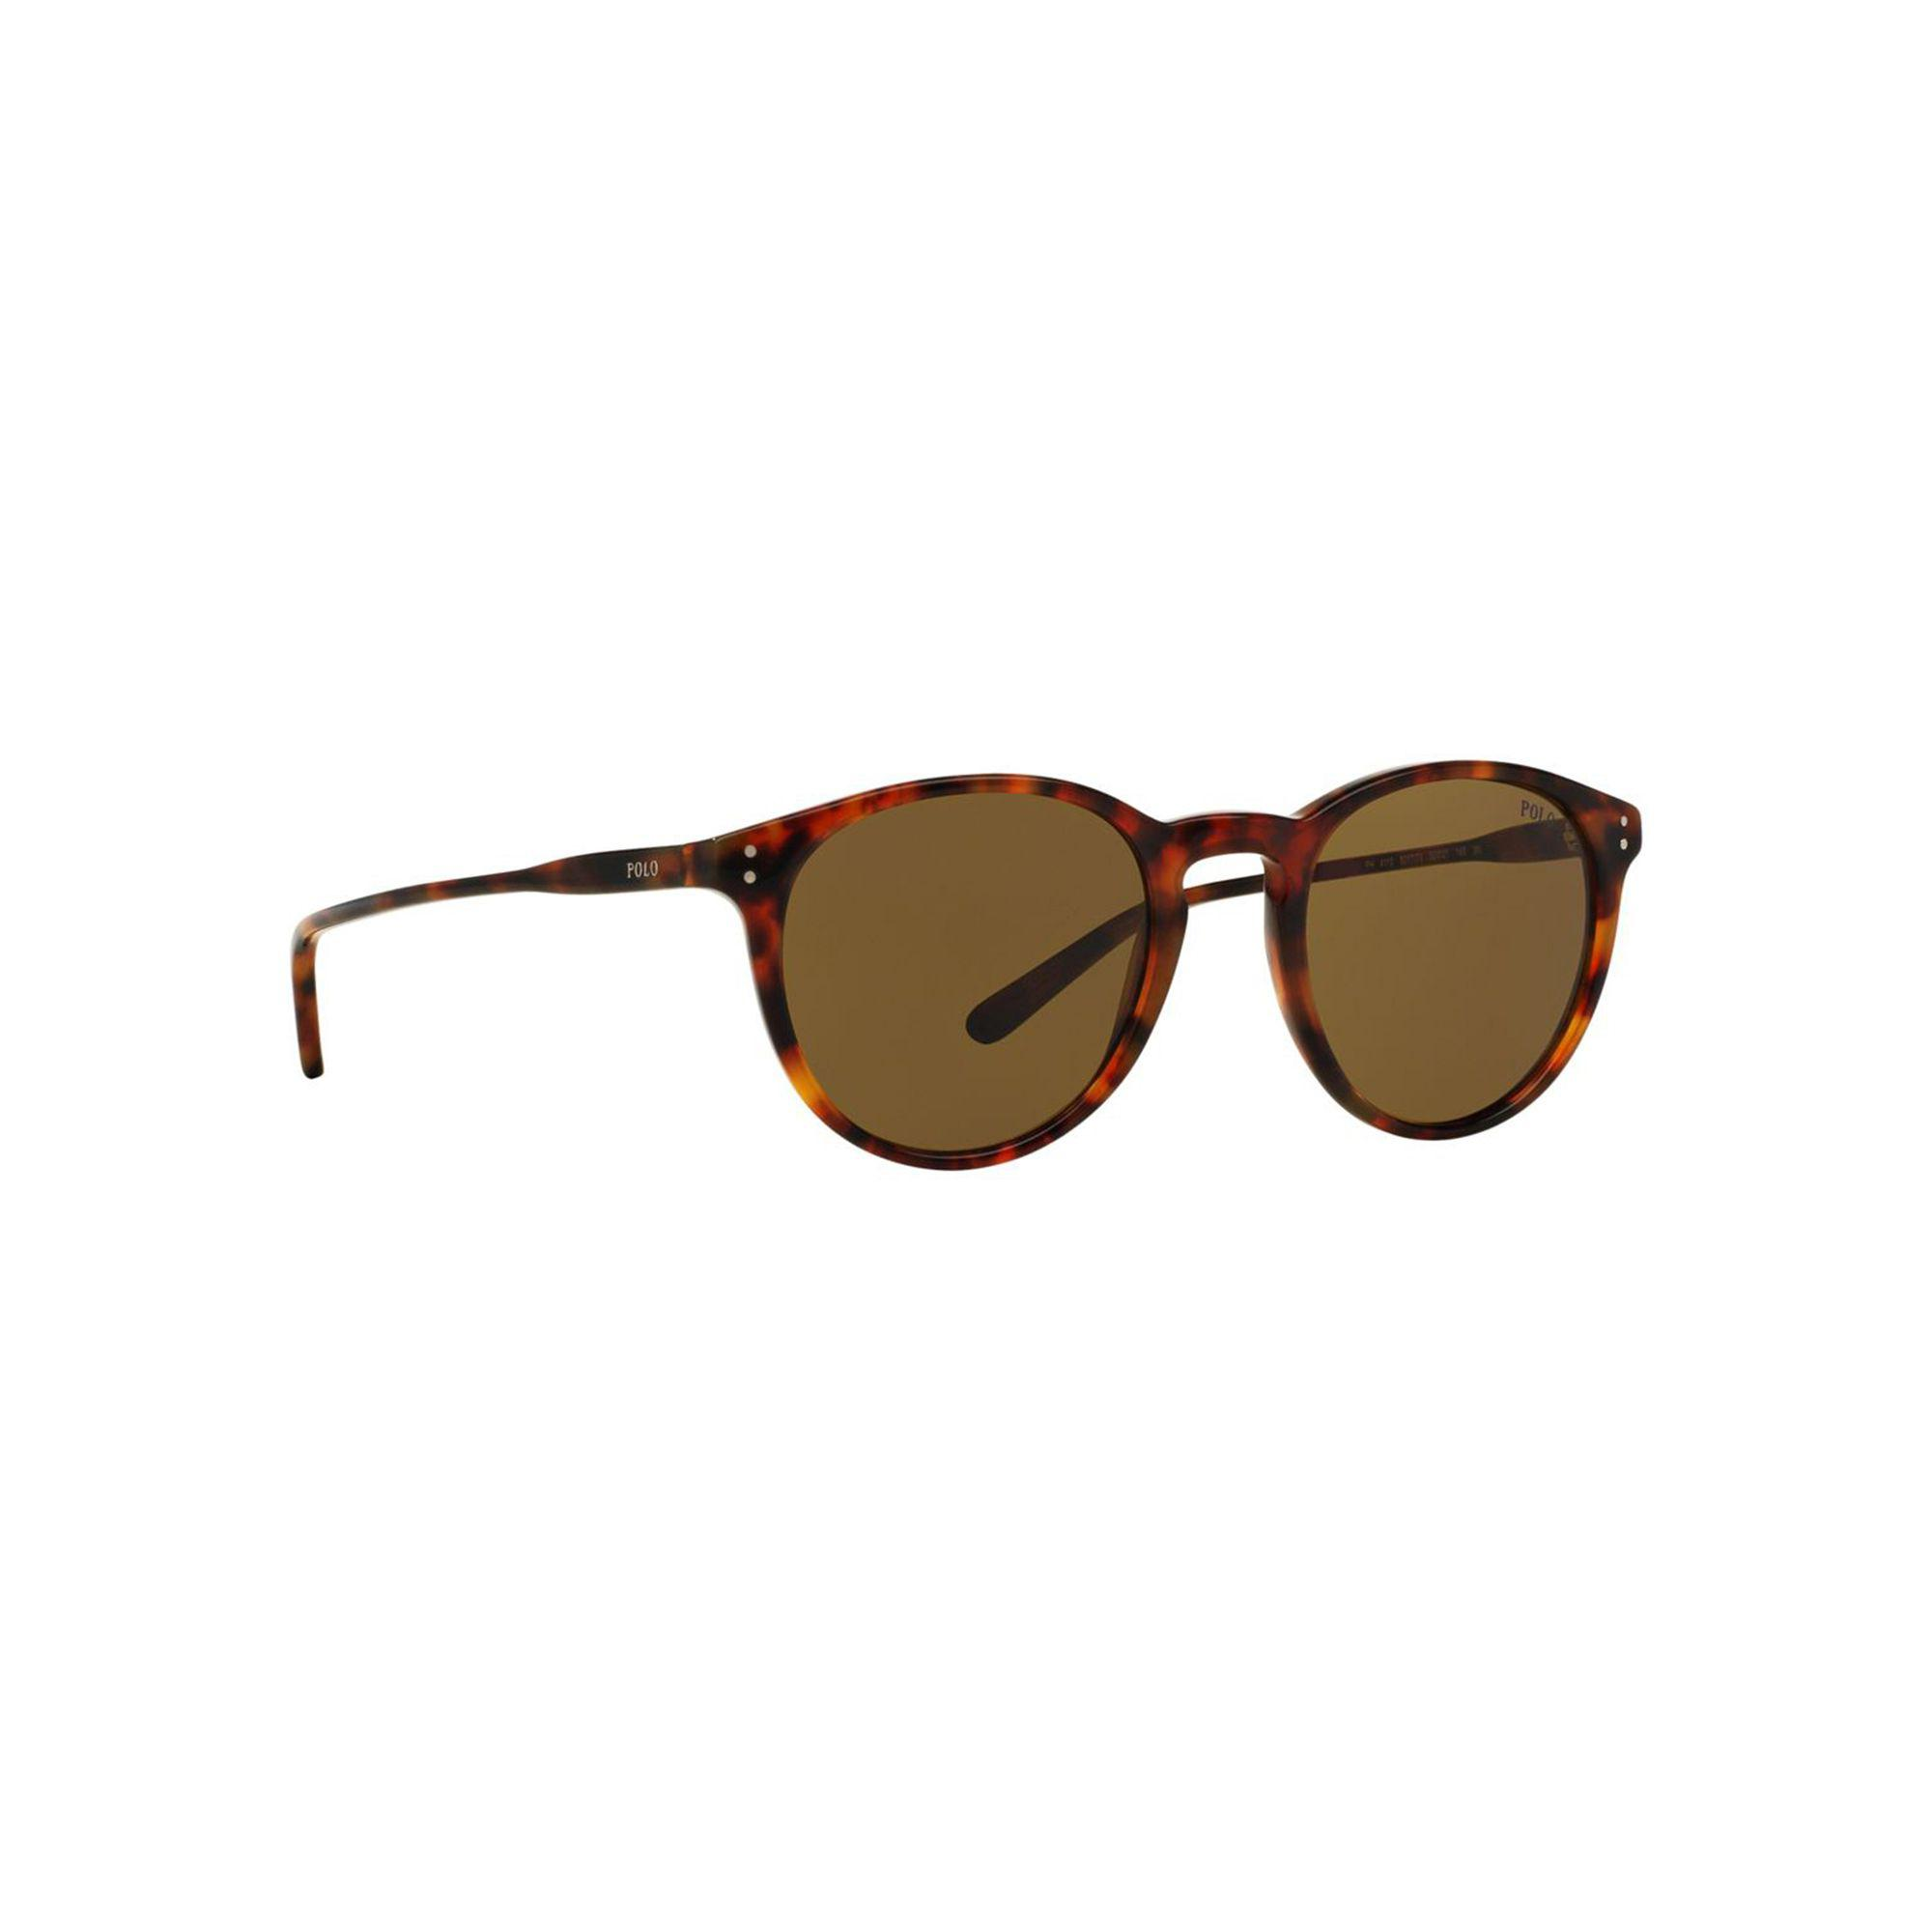 6efb3d5dba Polo Ralph Lauren Brown Ph4110 Phantos Sunglasses in Brown for Men ...